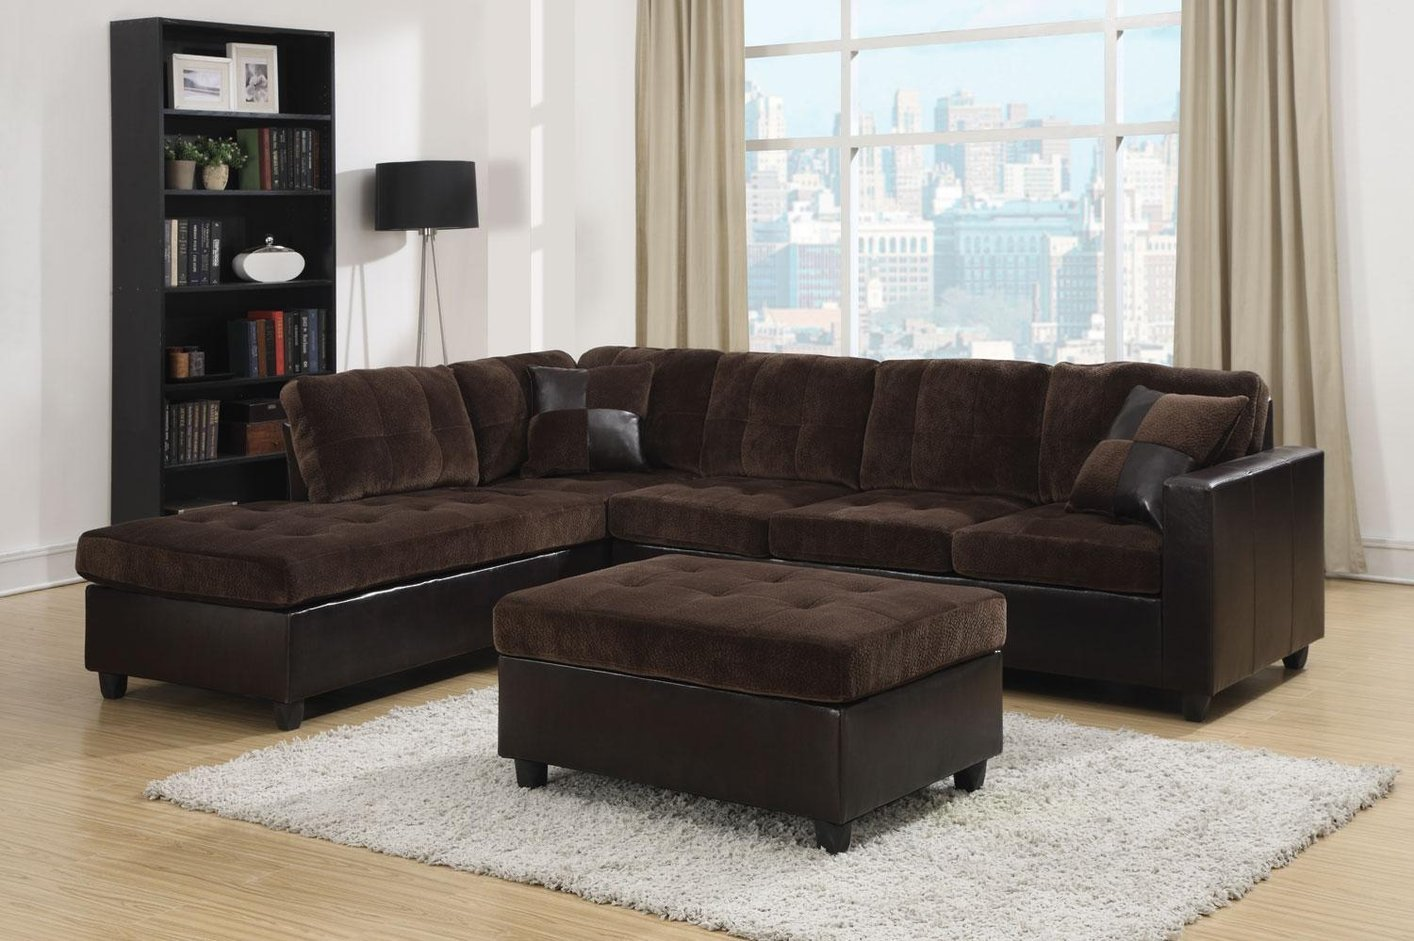 Coaster Mallory 505645 Brown Fabric Sectional Sofa Steal